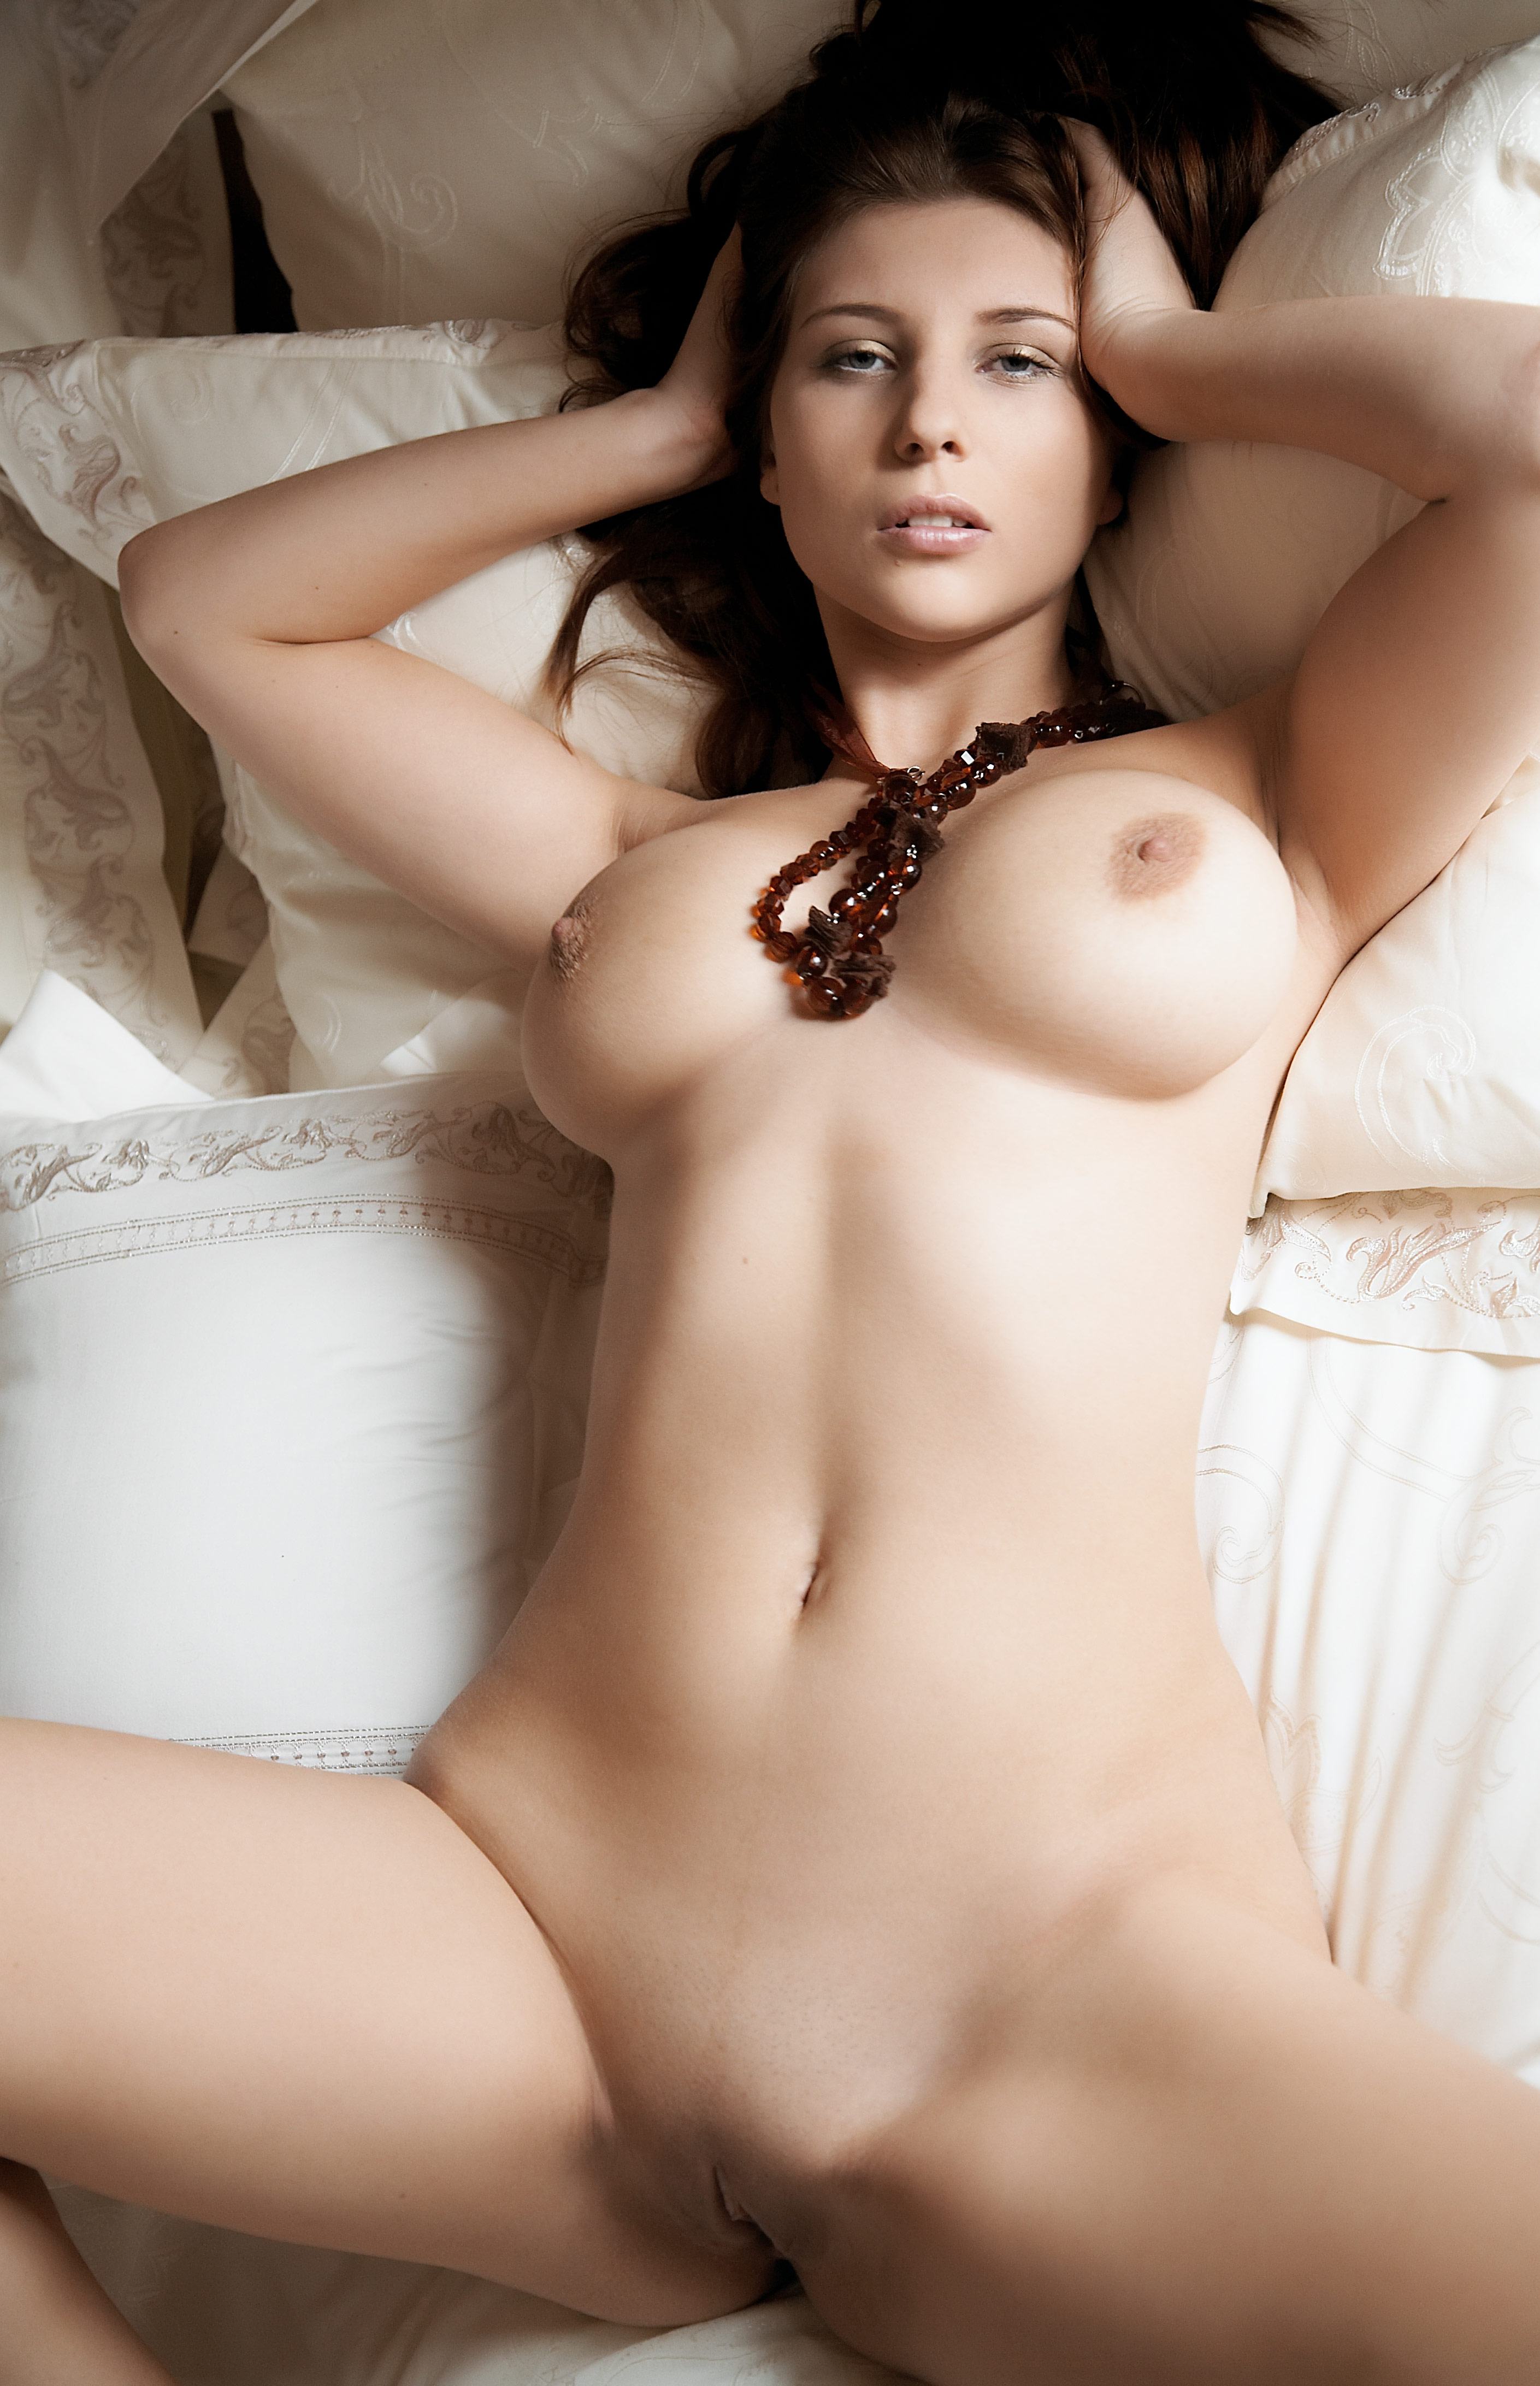 Sexy Naked Babe Wtih Hot Body Jpg